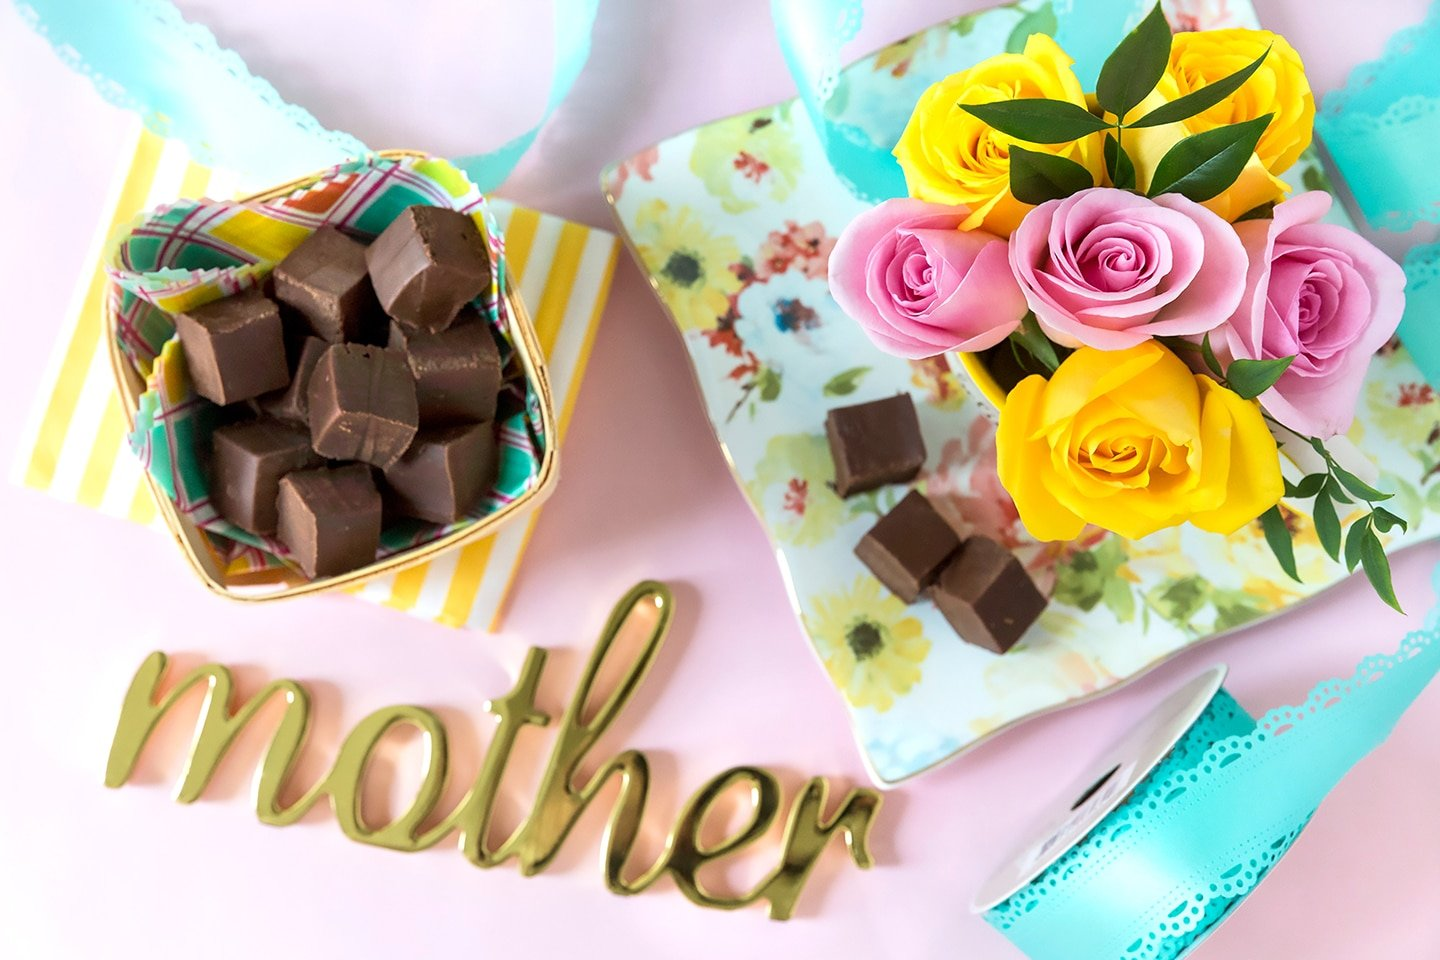 Celebrate with Chocolate for Mother's Day